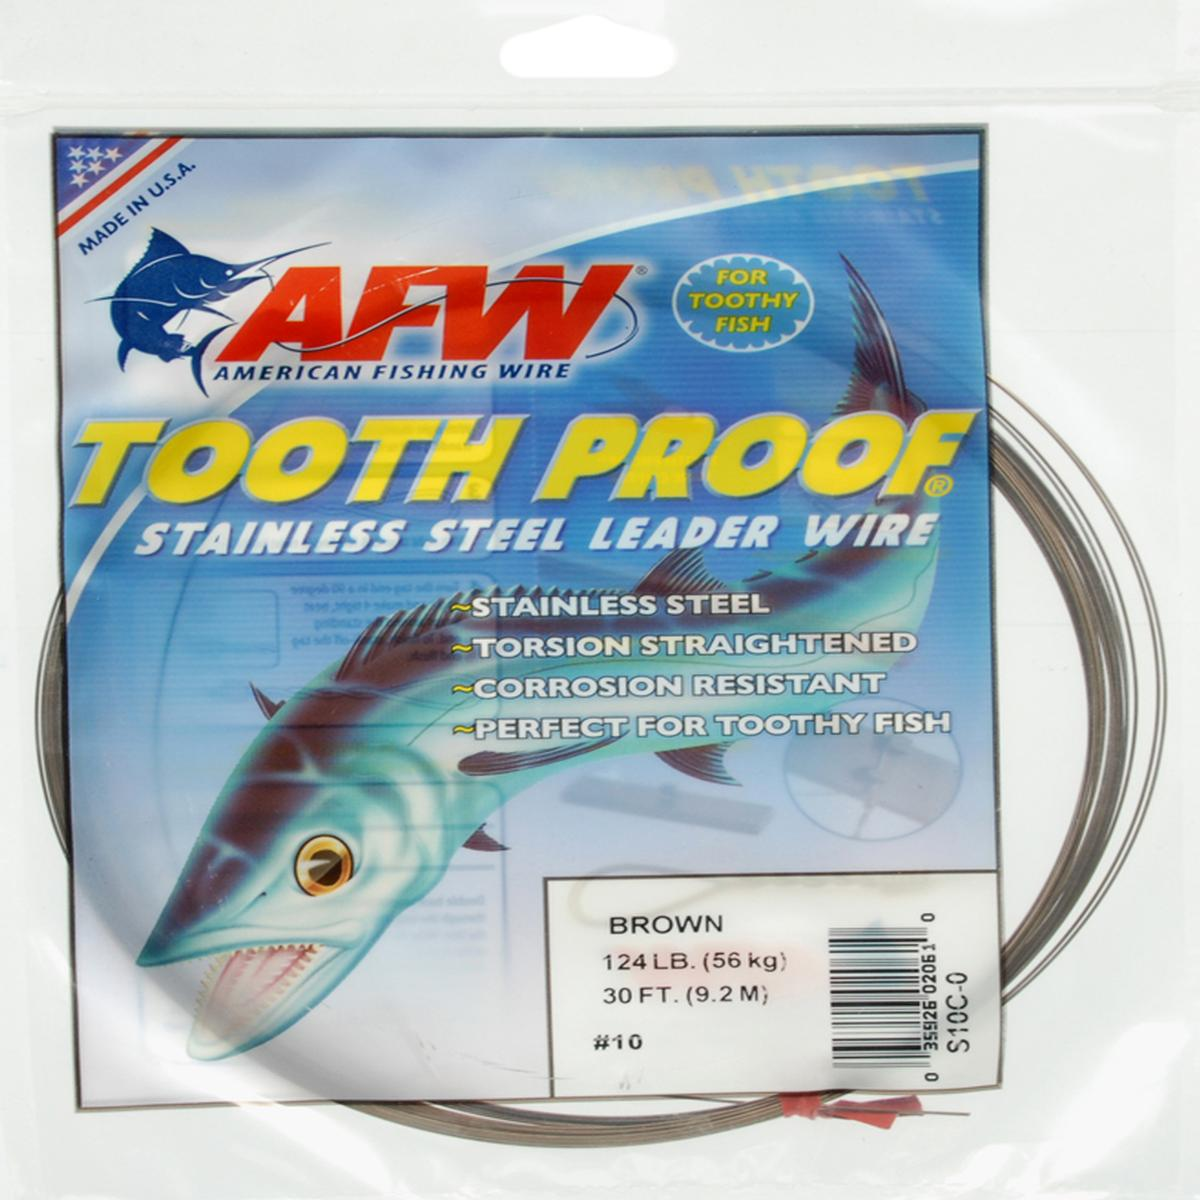 American Fishing Wire Tooth Proof Stainless Steel Single Strand Leader Wire Multi-Colored